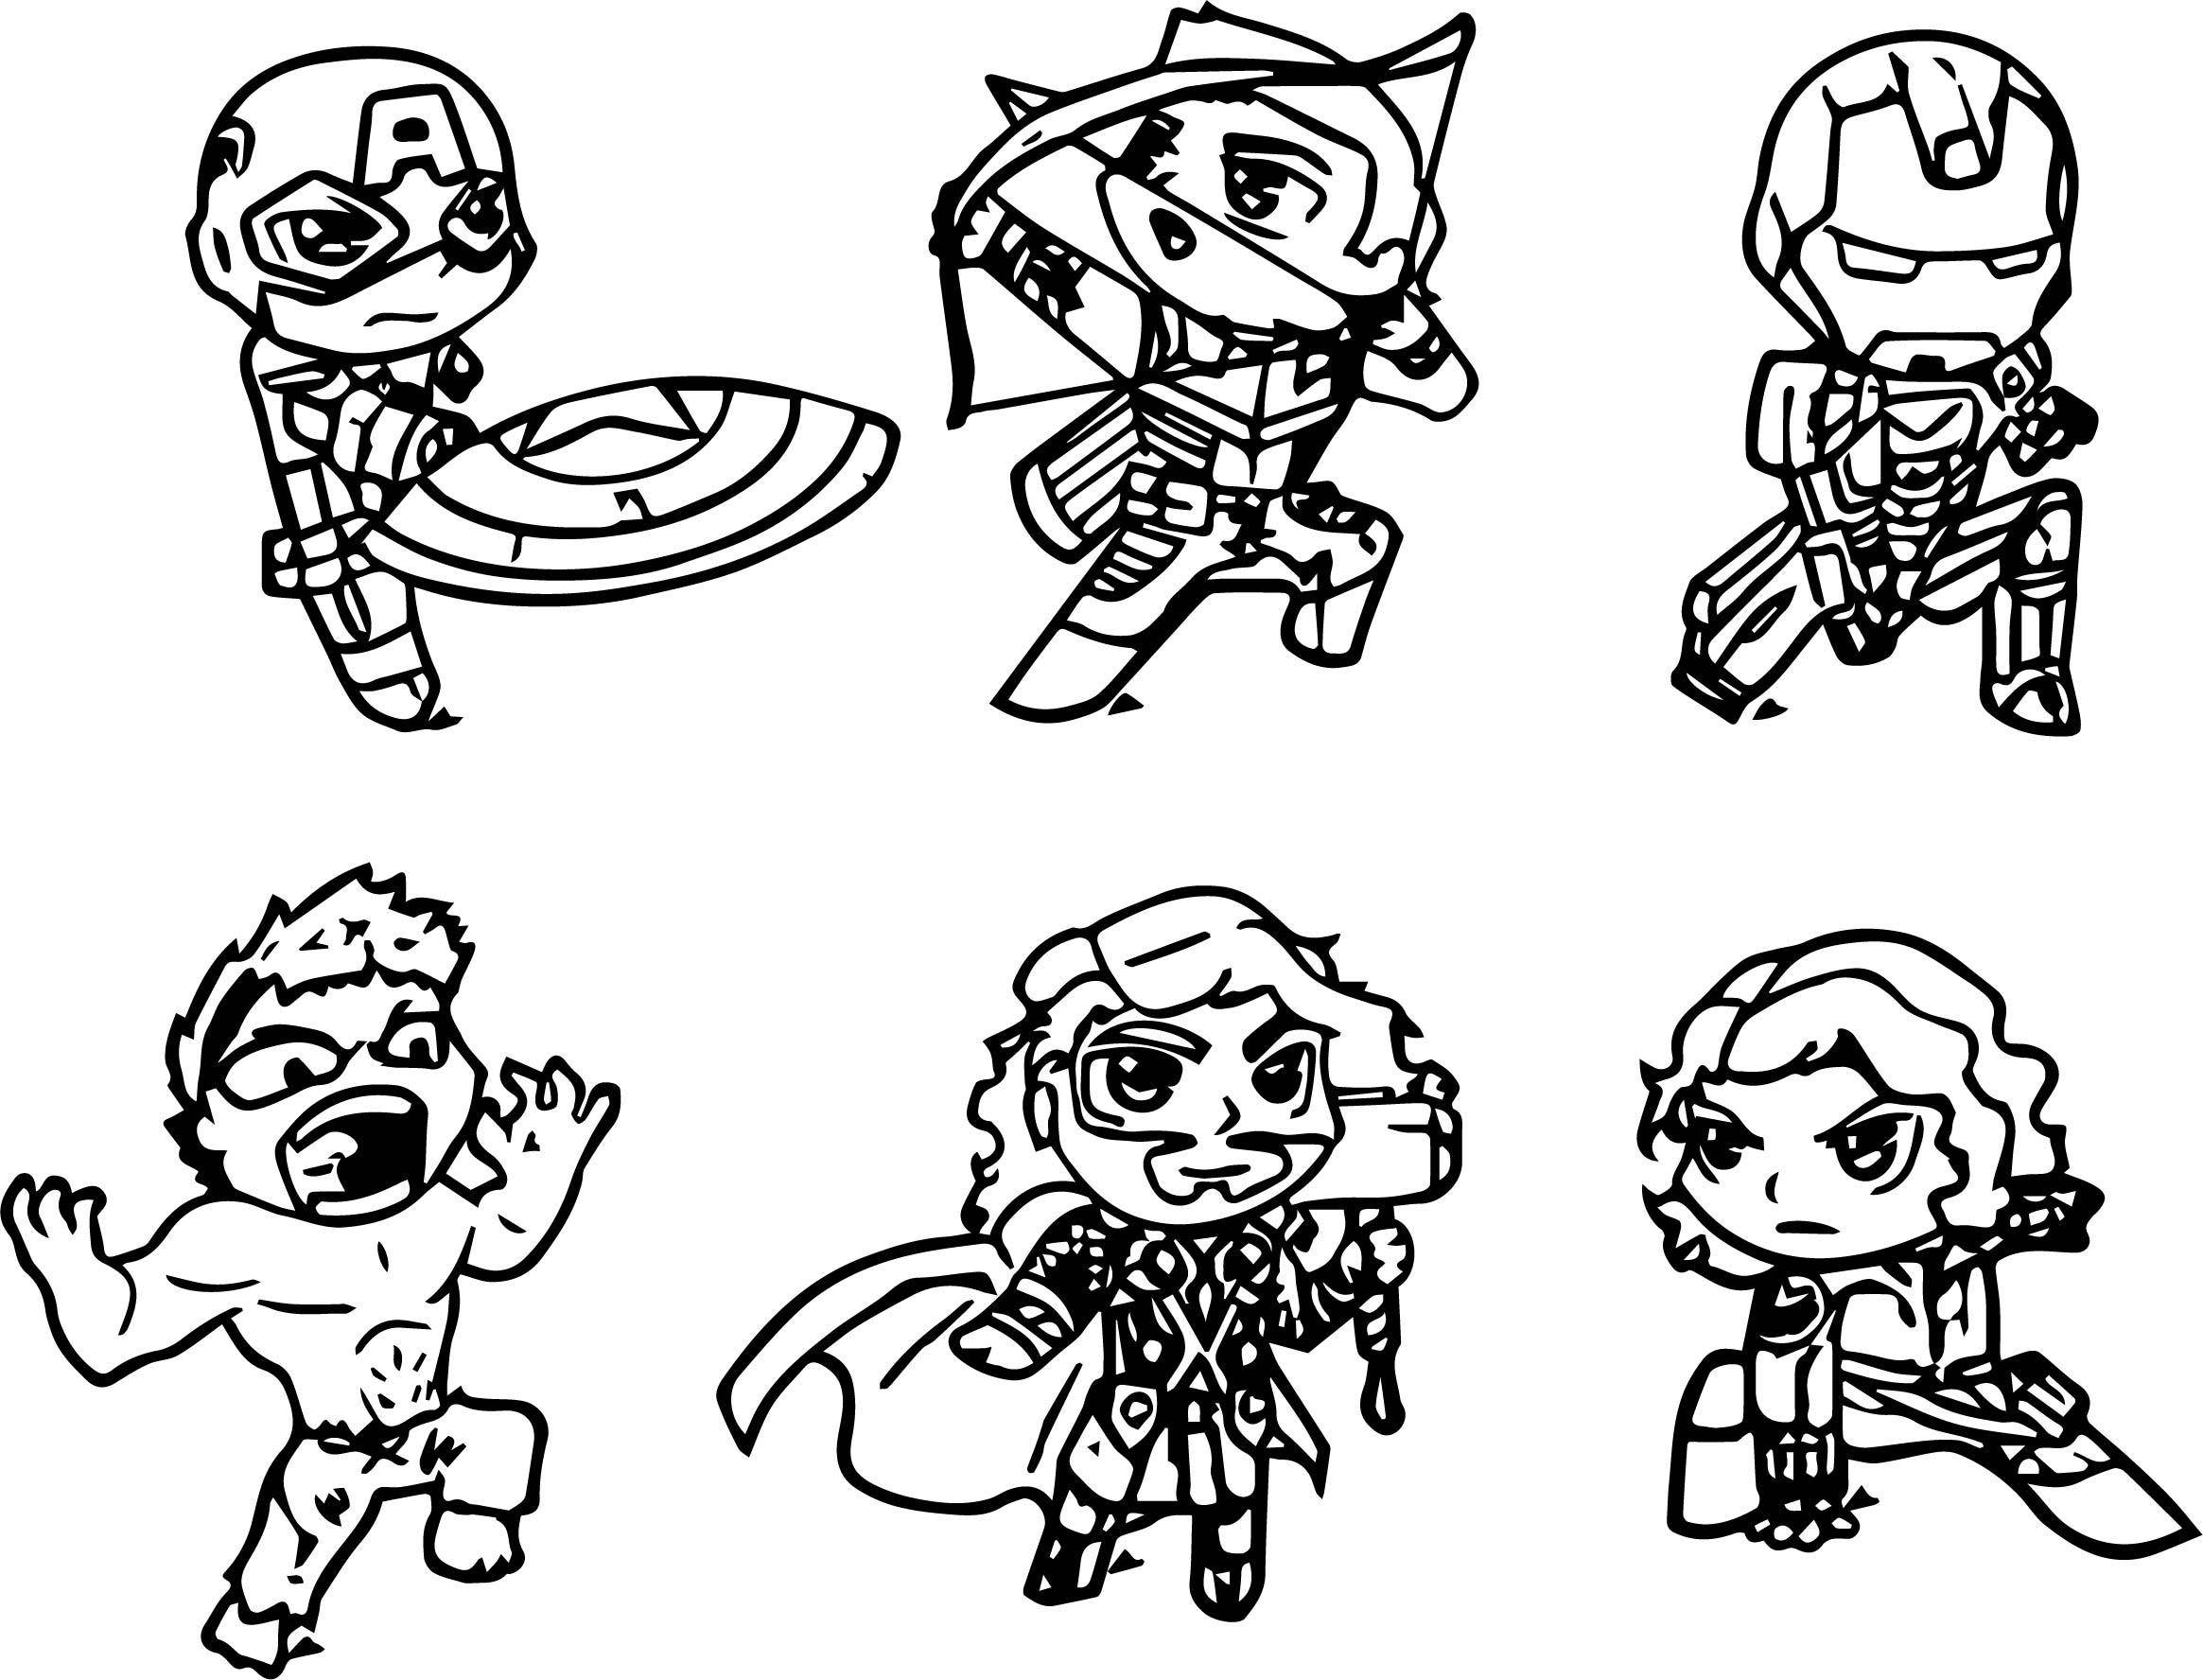 coloring picture avengers printable avengers coloring pages kids adults pdf picture coloring avengers